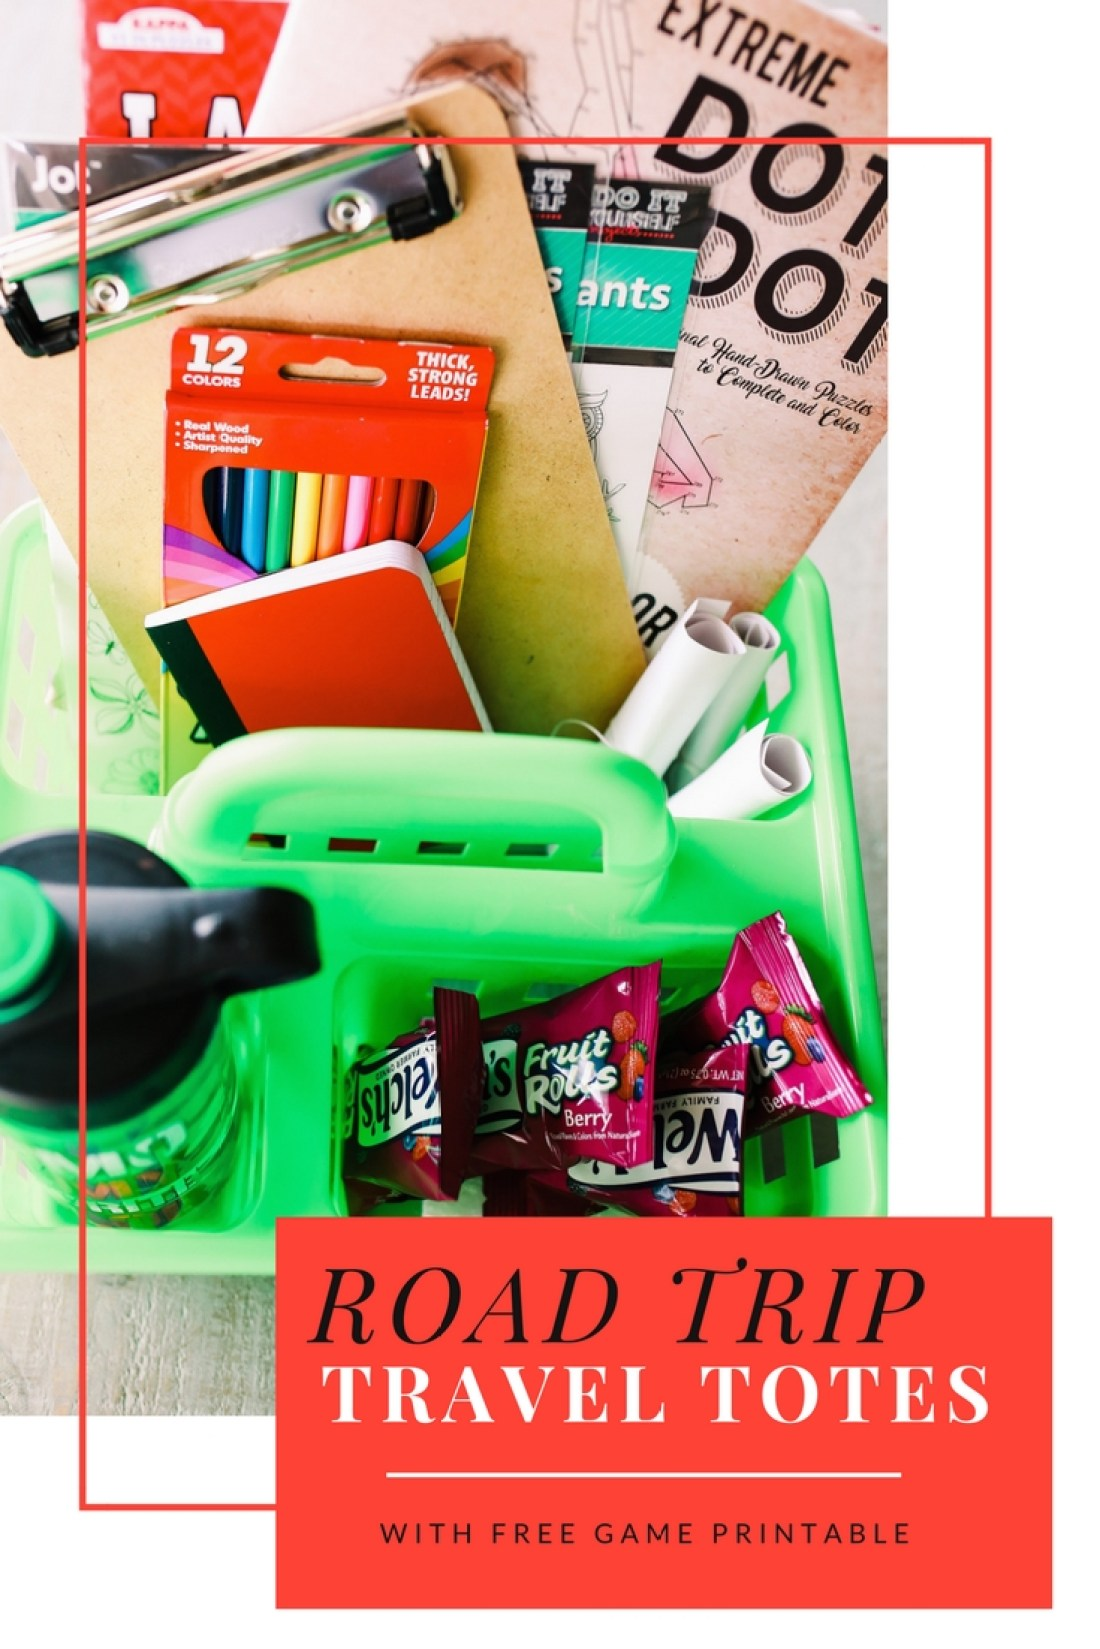 Everything you need plus some great tips and tricks for an awesome tech-free road trip!